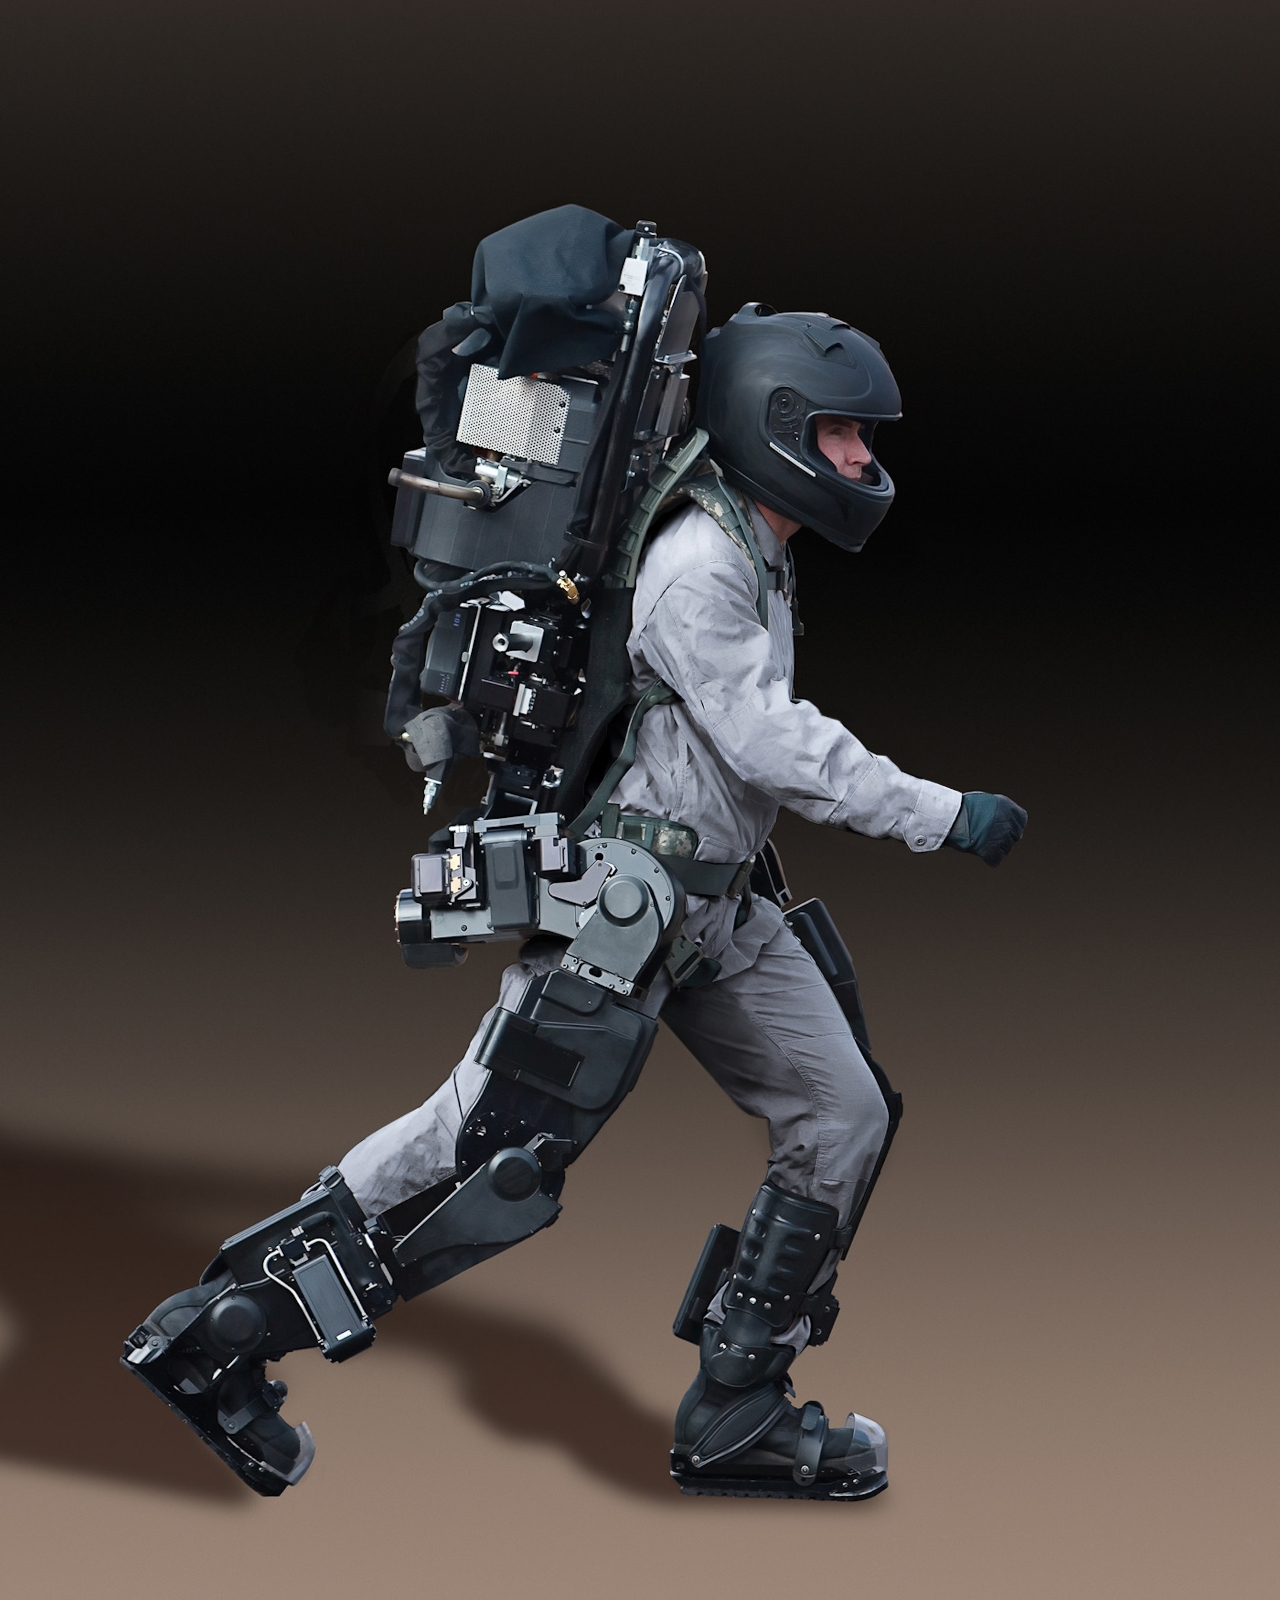 Caterpillar, GE and Microsoft invest in Sarcos Robotics exoskeleton